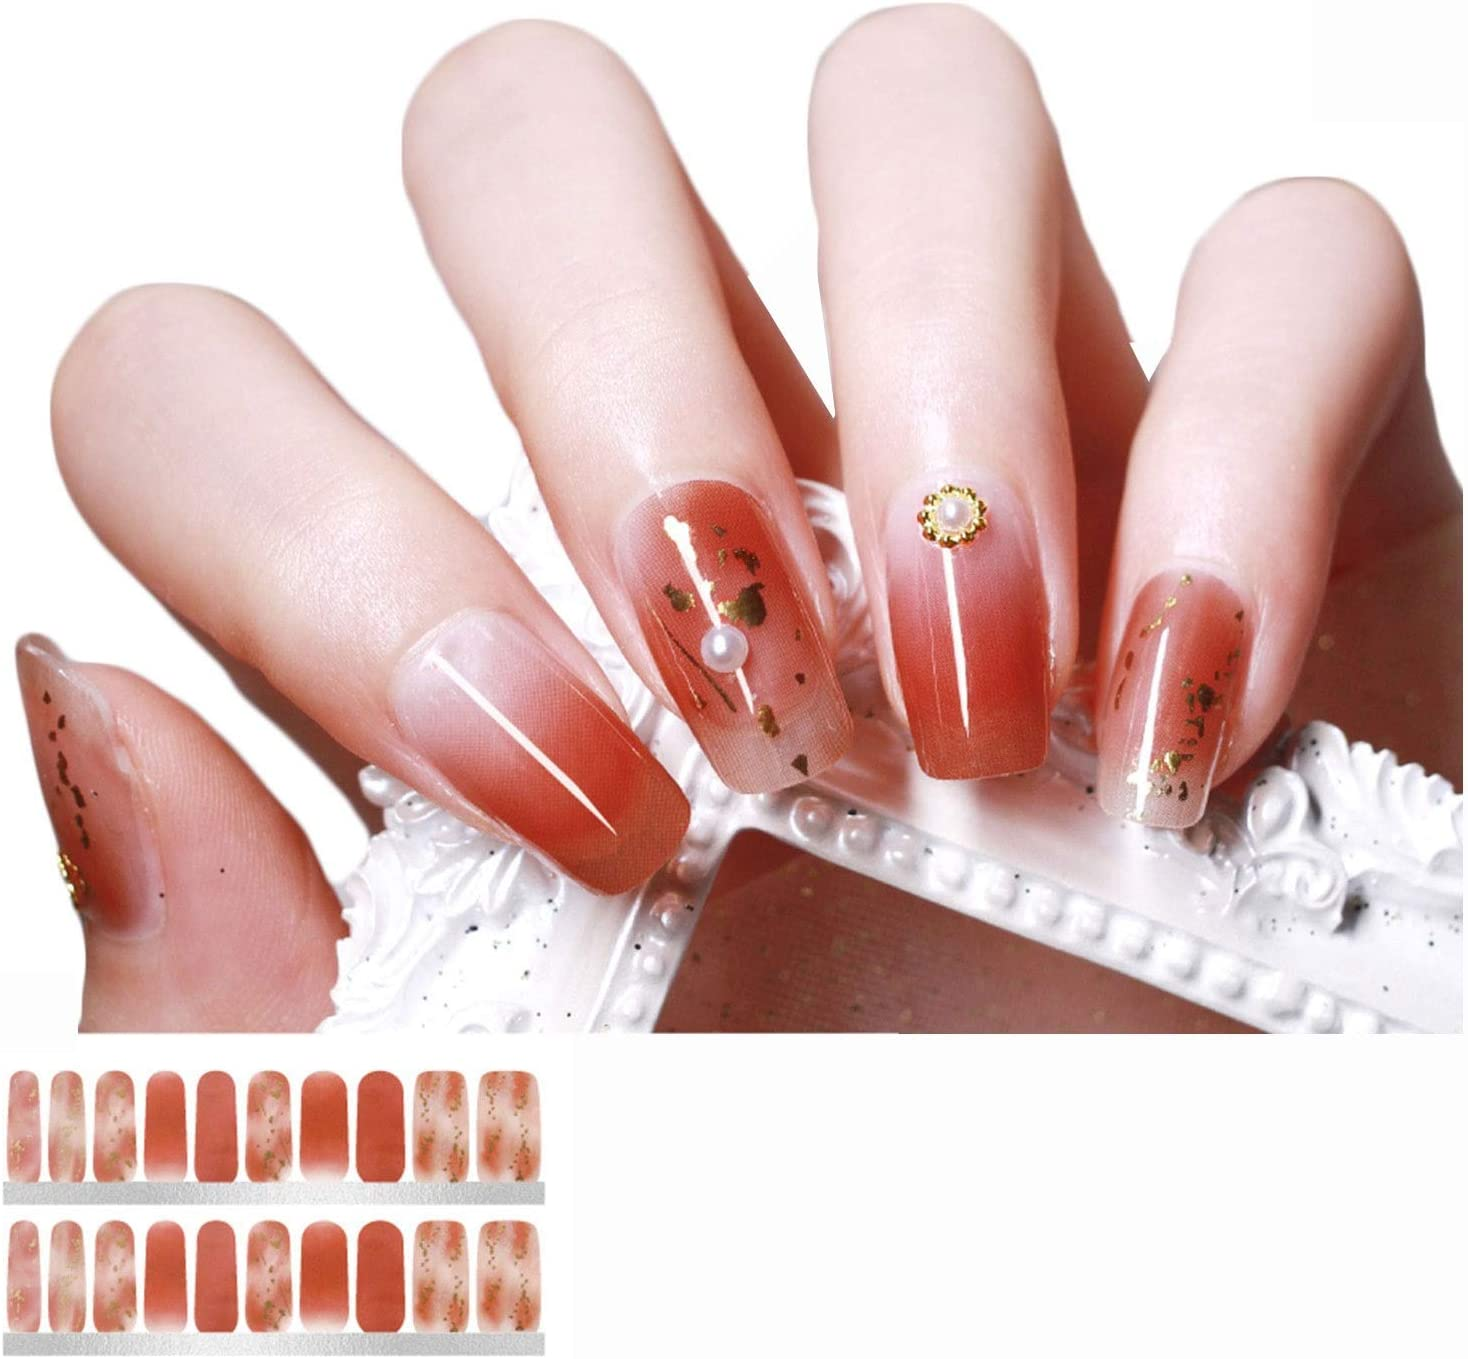 Nail Stickers Women's Super popular specialty store Patch 3D Selling Durable Waterproof and